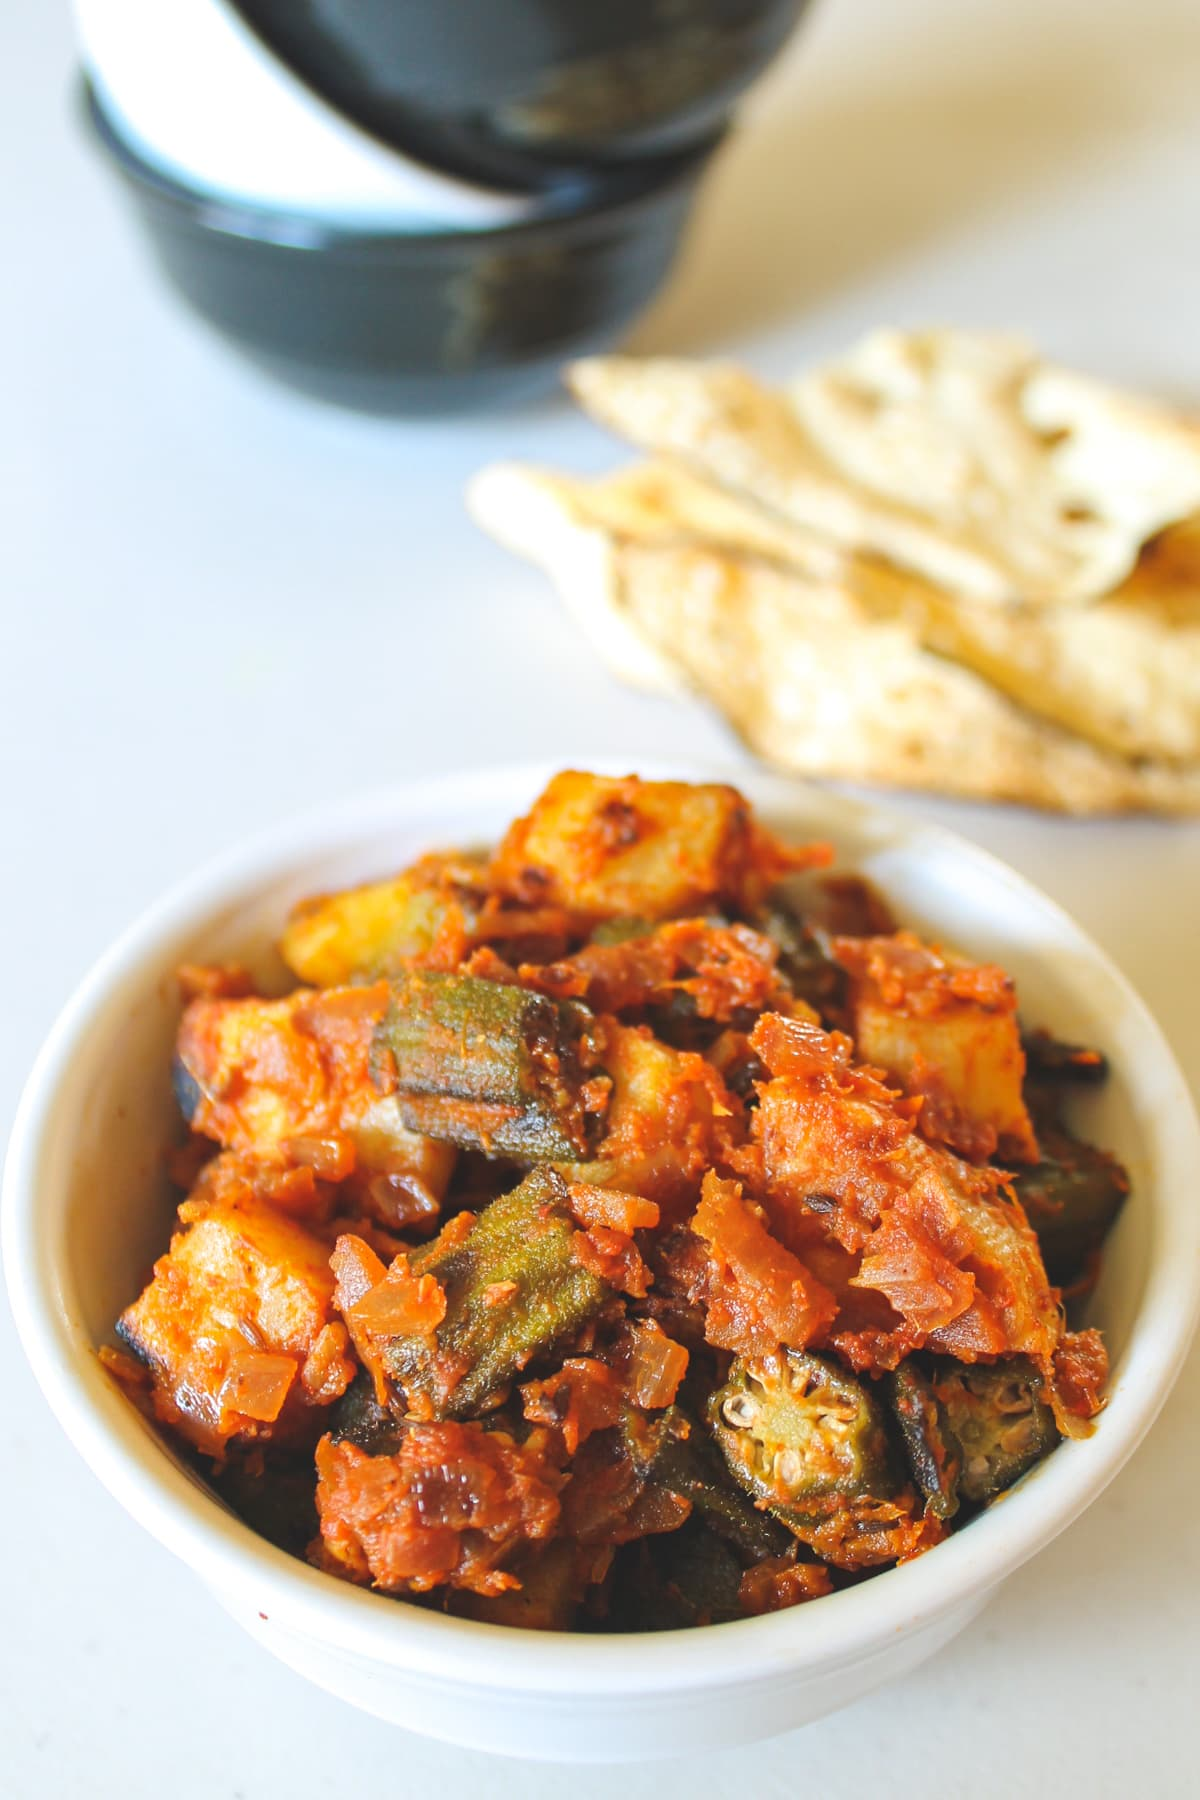 aloo bhindi served in a bowl with papad and stacked bowls in the back.